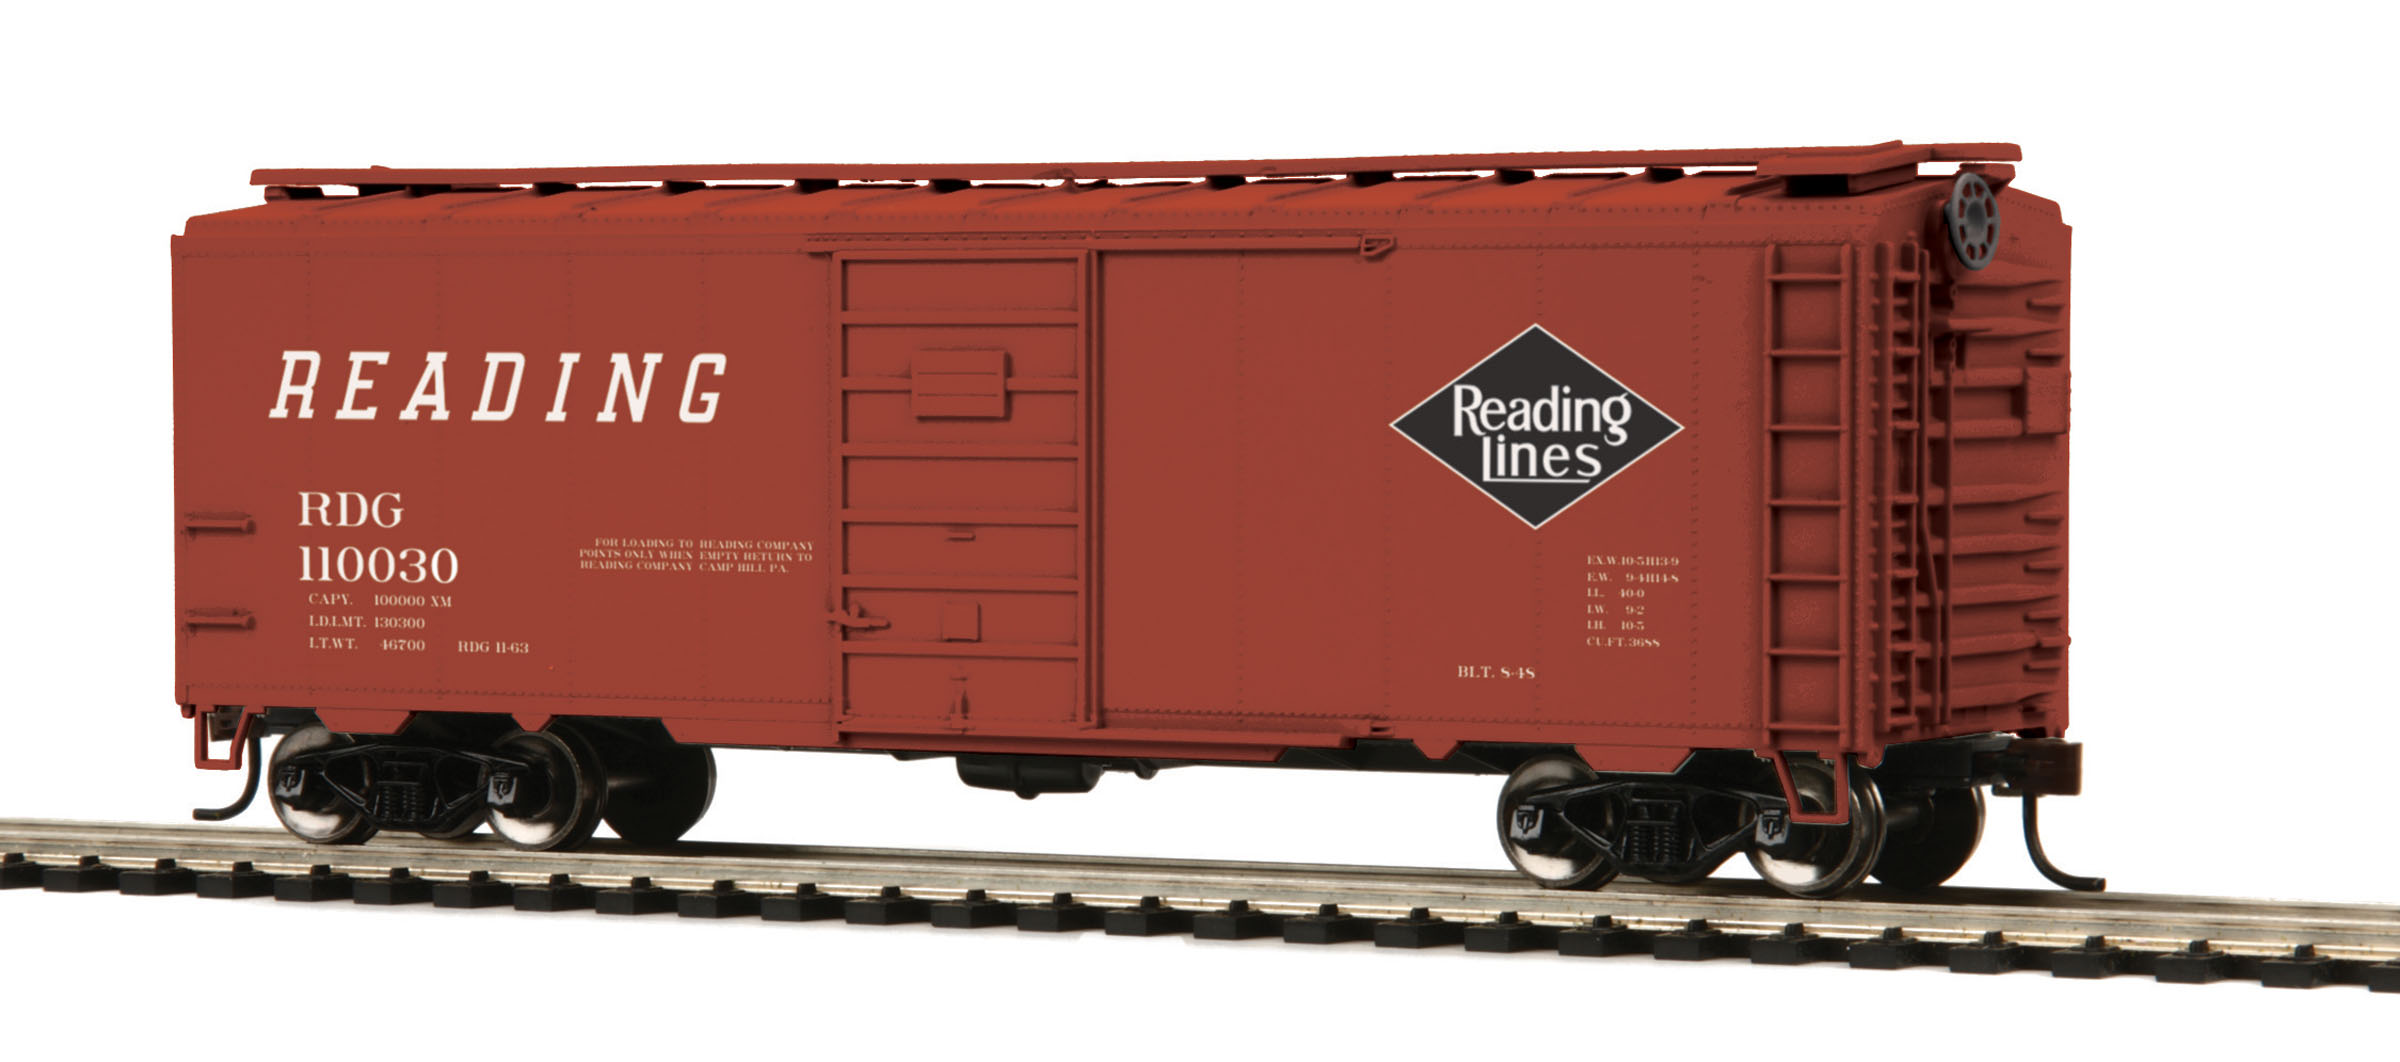 HO Scale MTH HO 40' PS-1 Box Car #110030 - Click Image to Close